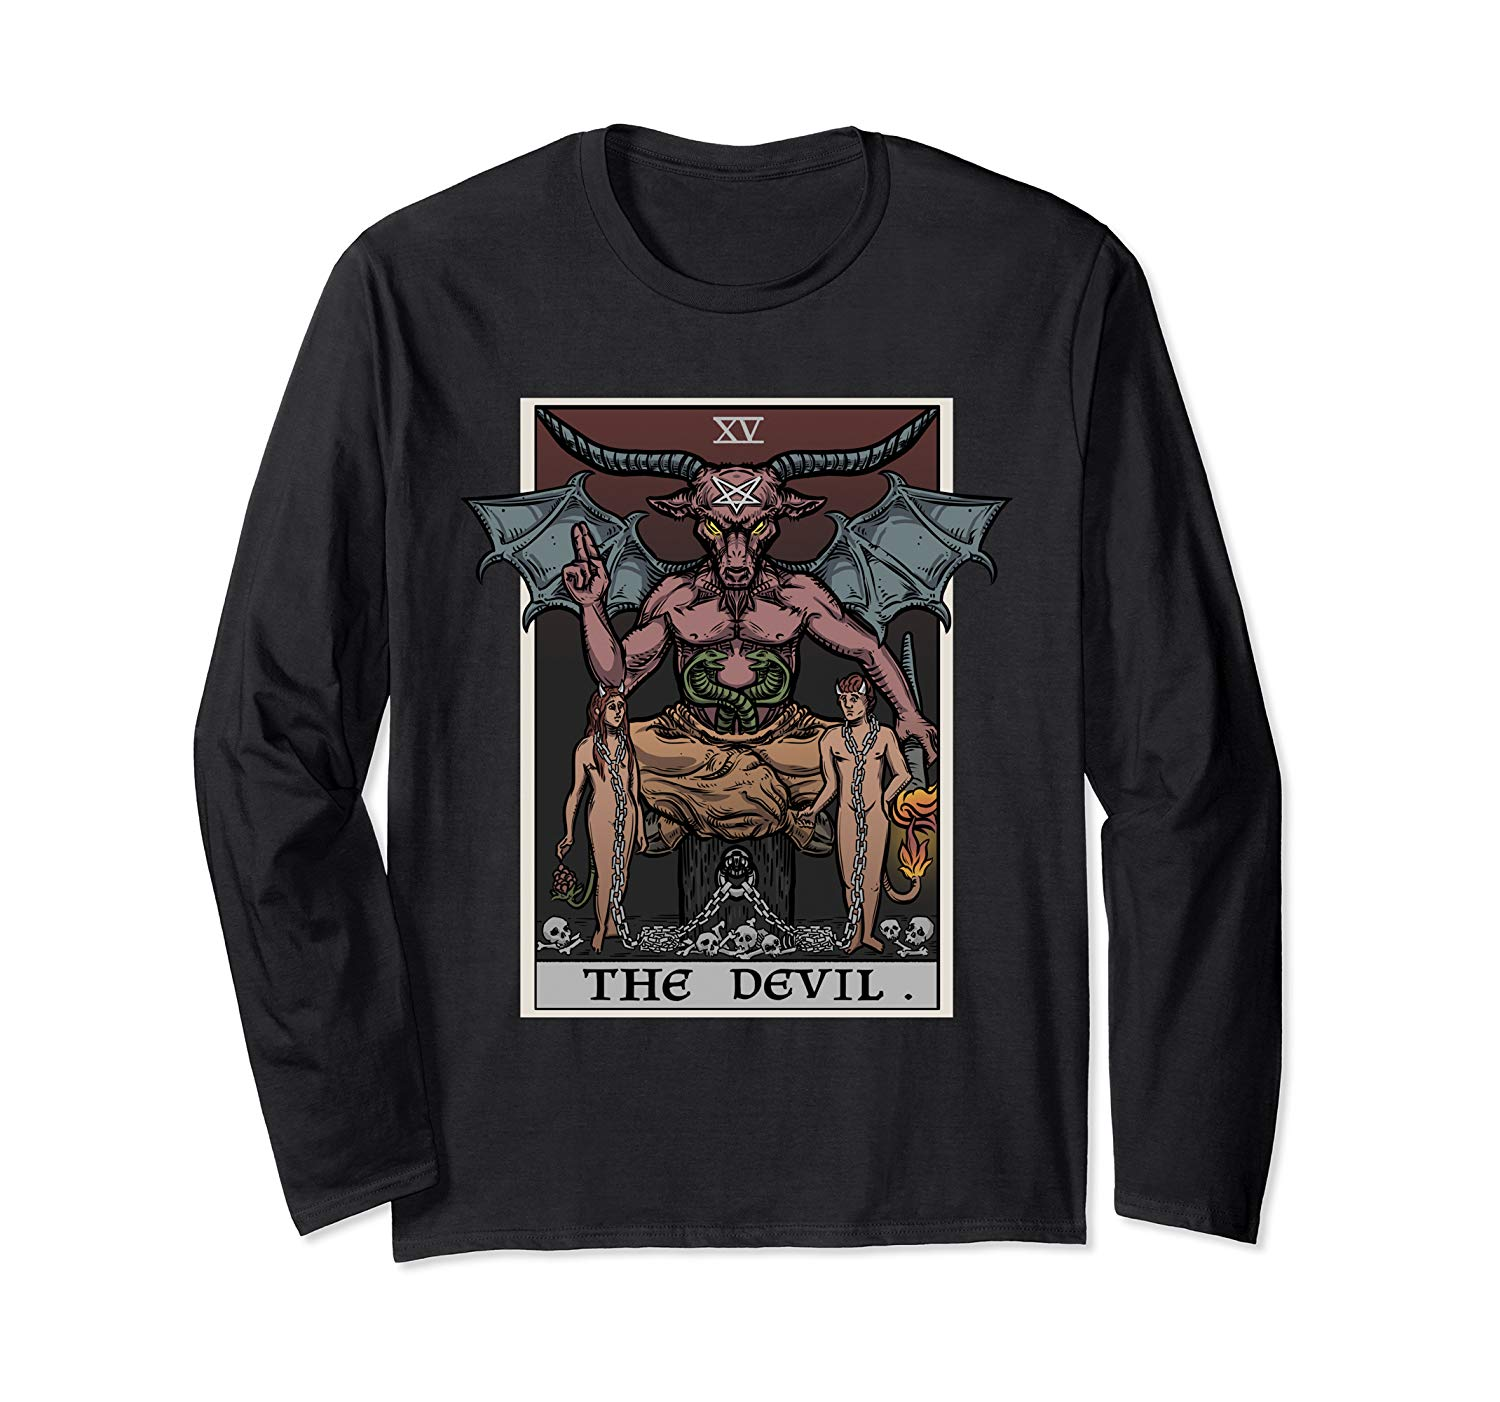 The Devil Tarot Card Shirt Satanic Witch Gift Gothic Clothes T Shirt